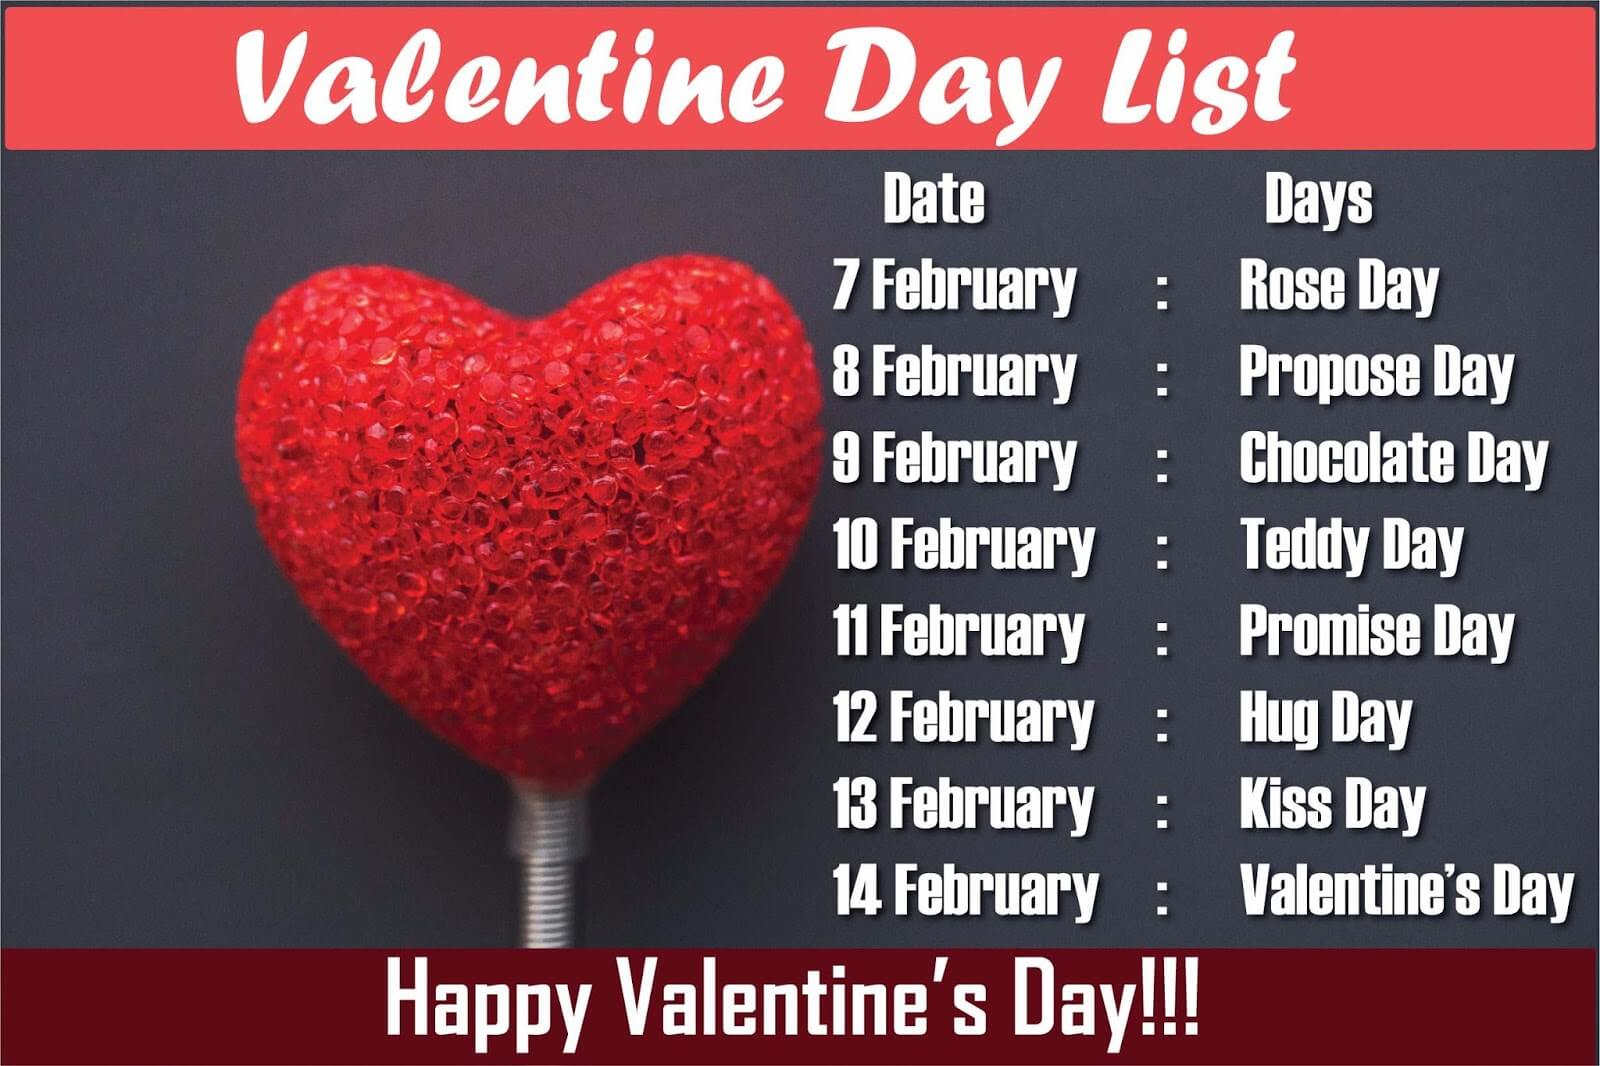 Valentines Day Week List 2019: Date Sheet & List Of February'sDays Of Love